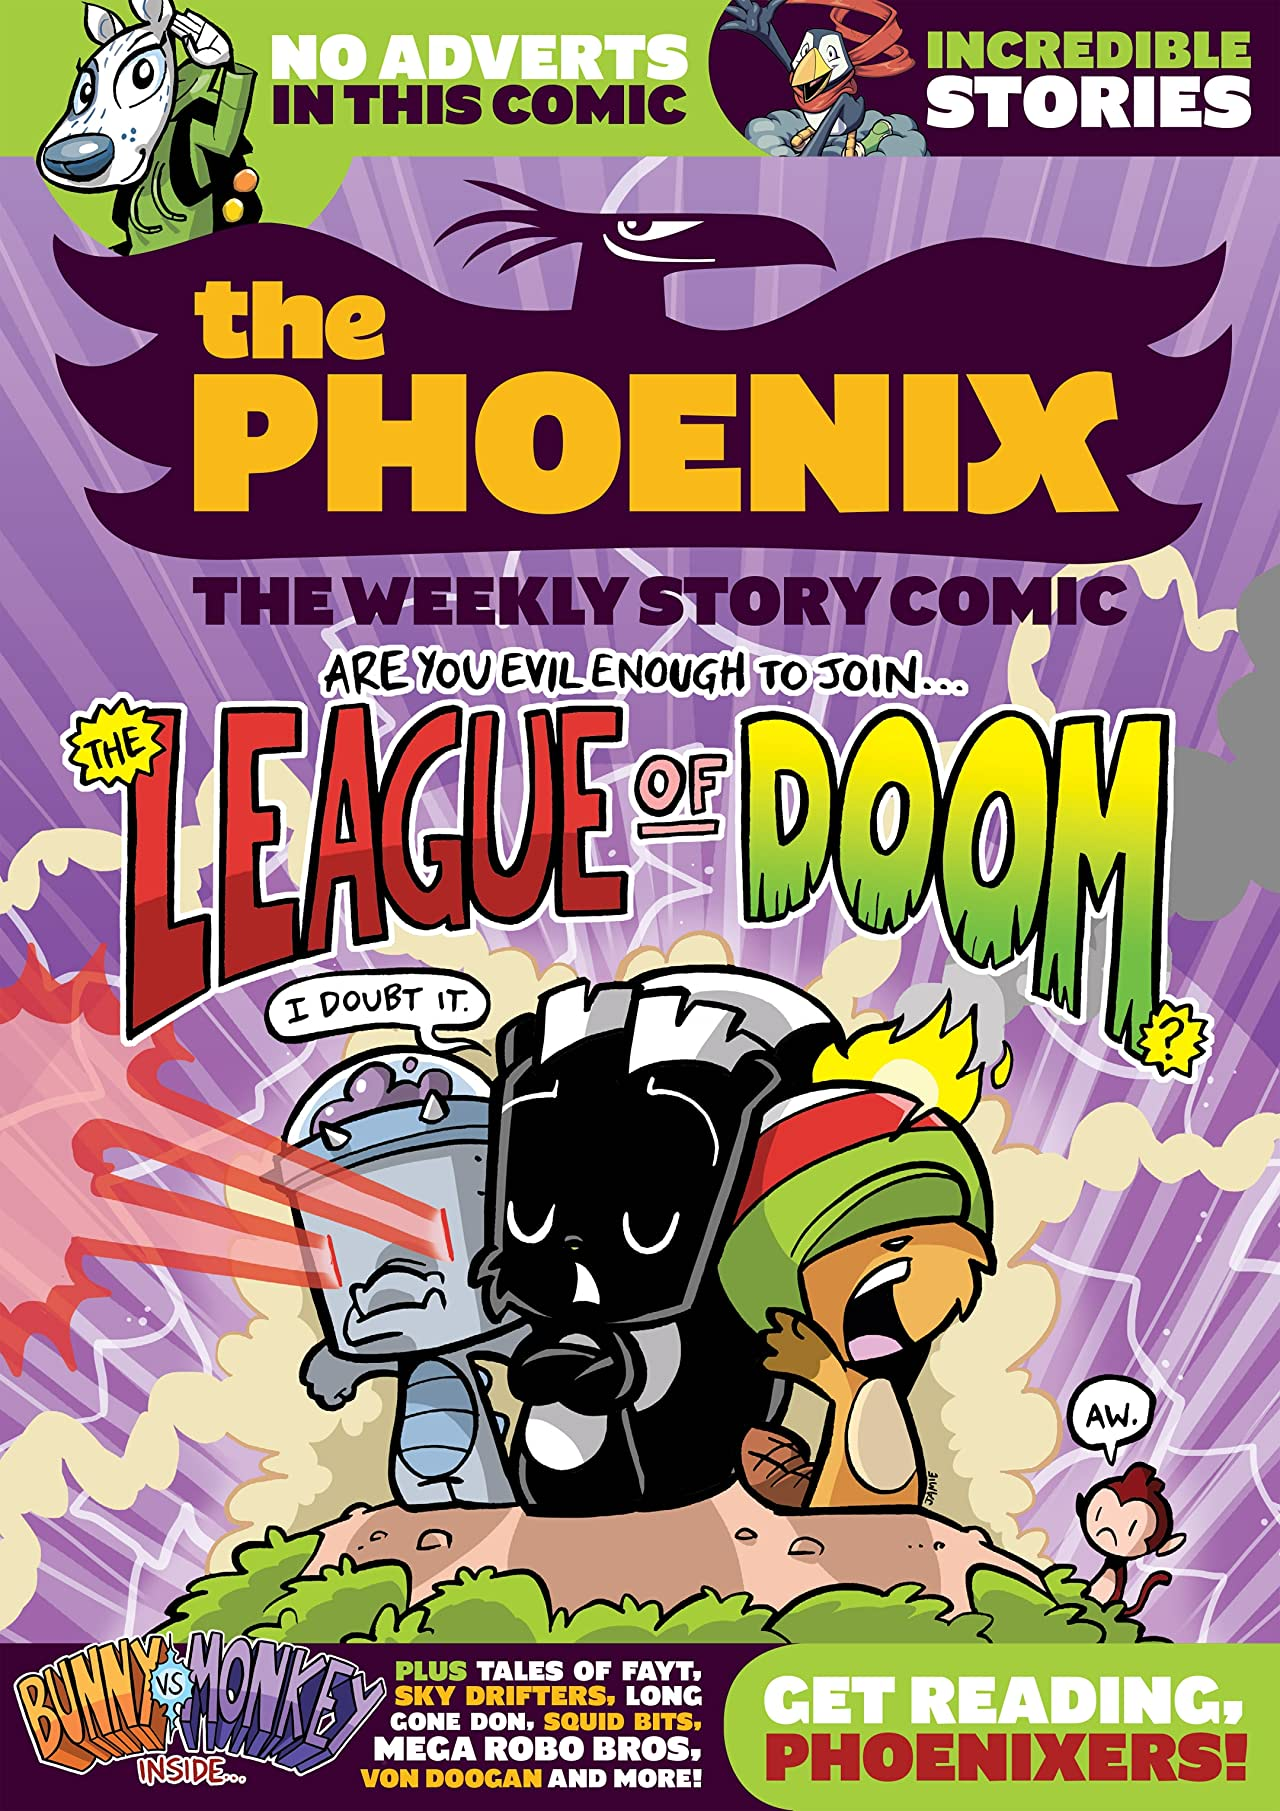 The Phoenix #126: The Weekly Story Comic